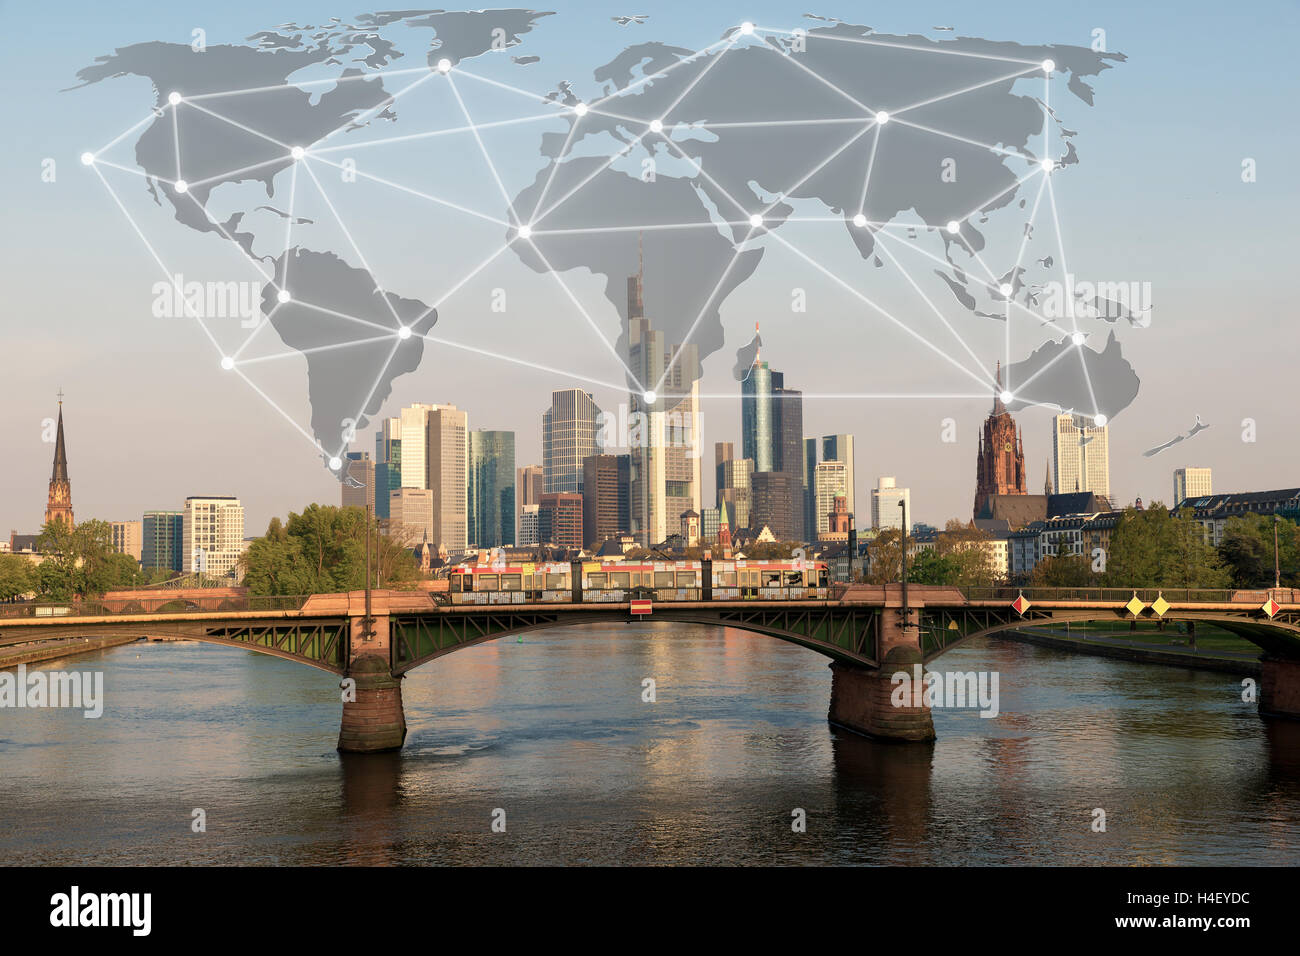 Network connection partnership with Frankfurt city. Business globalization network connection technology concept - Stock Image